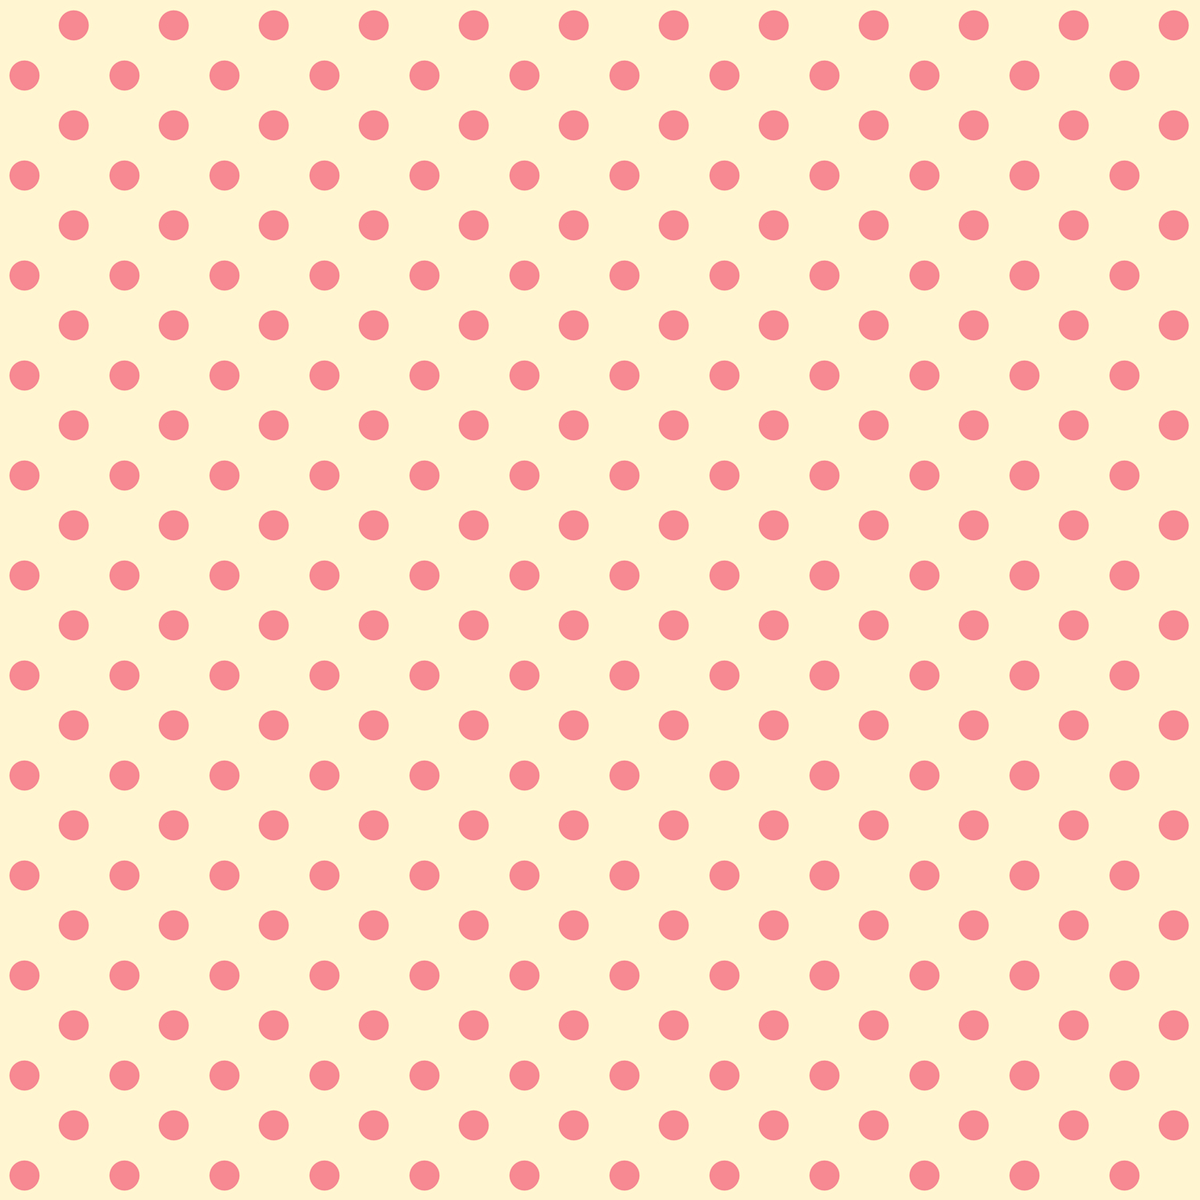 Free Polka Dot, Download Free Clip Art, Free Clip Art On Clipart Library - Free Printable Pink Polka Dot Paper